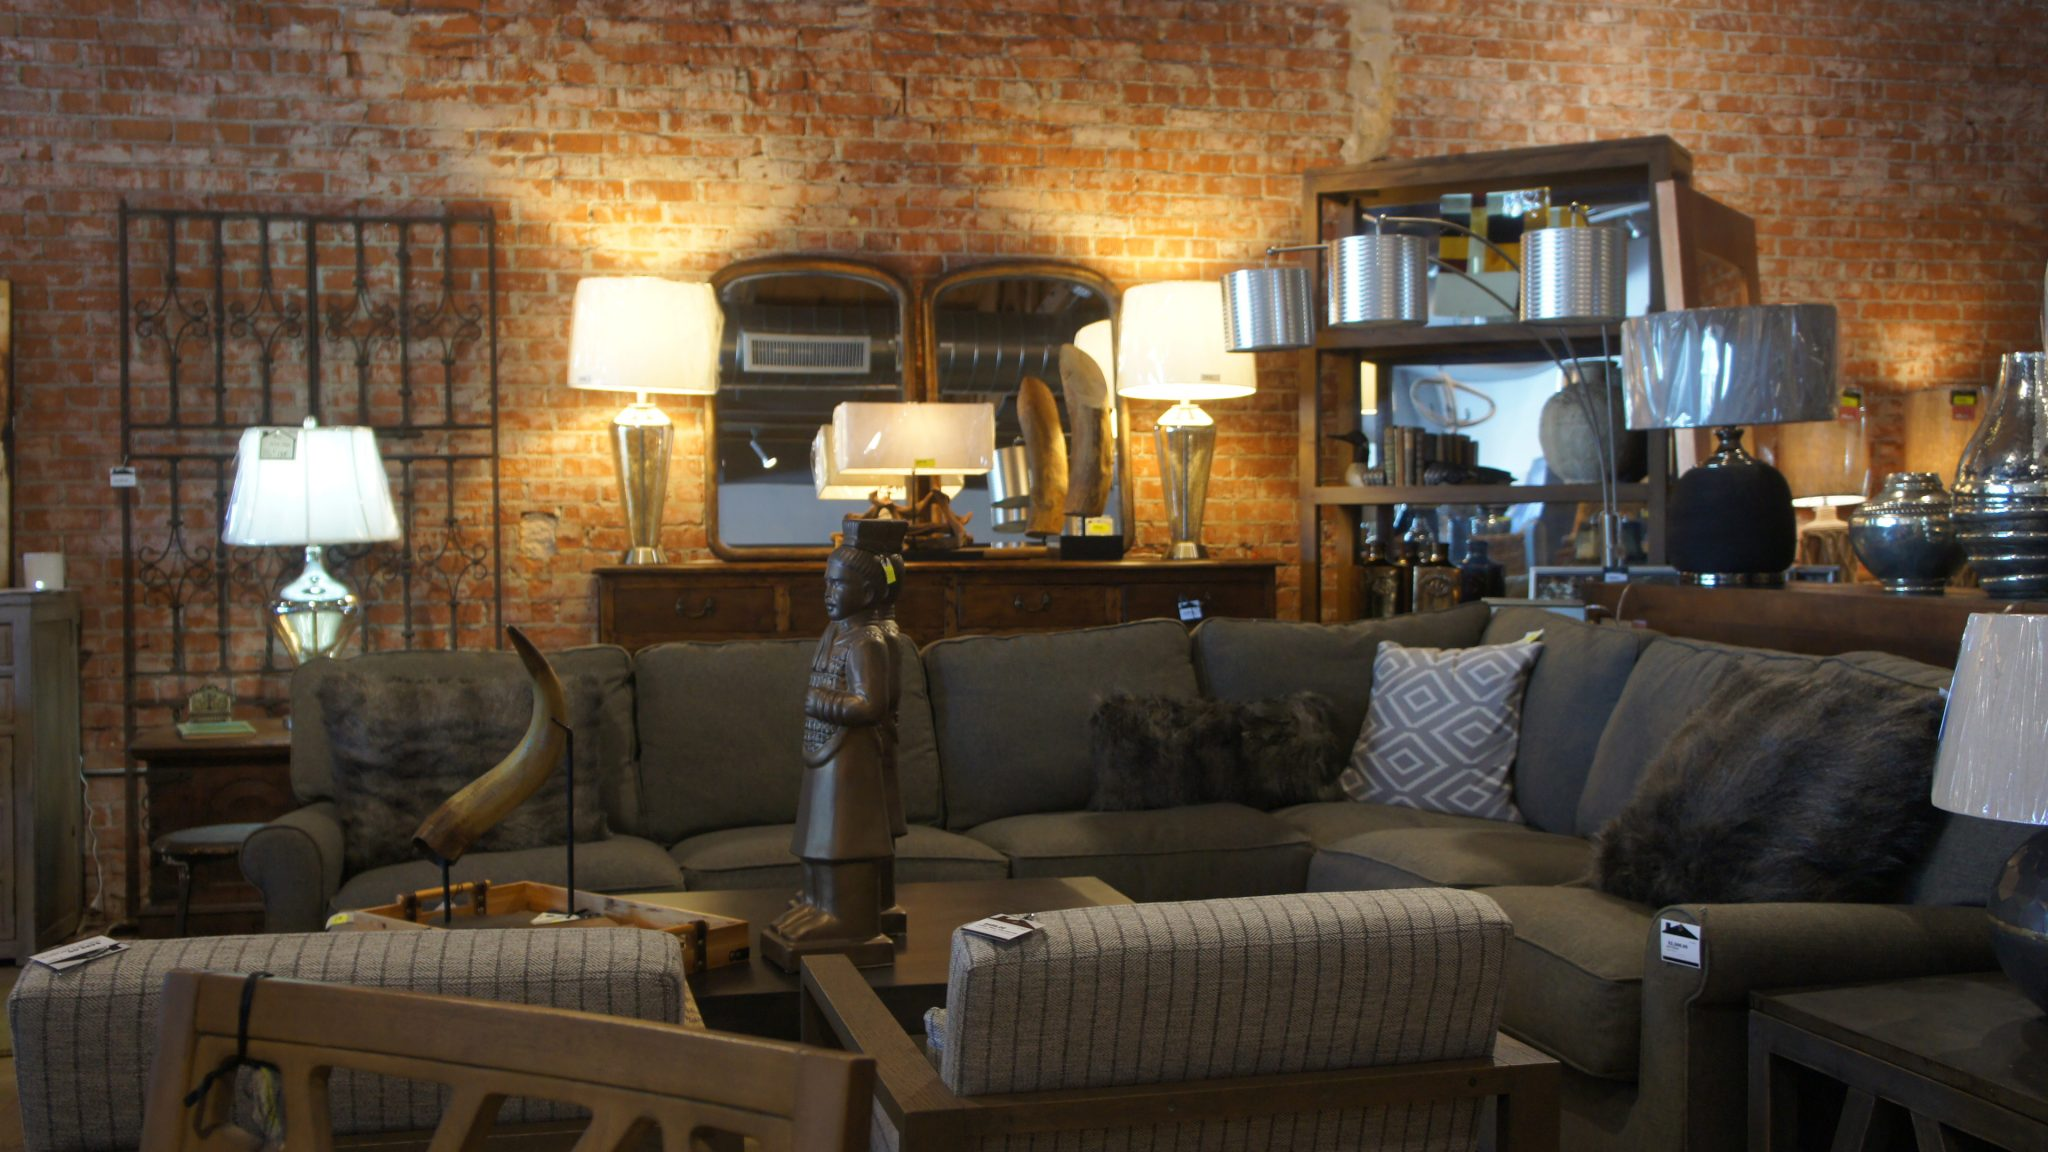 Grand Opening Of New Furniture Store In Arcadia Offers Eclectic Decor Arizona News